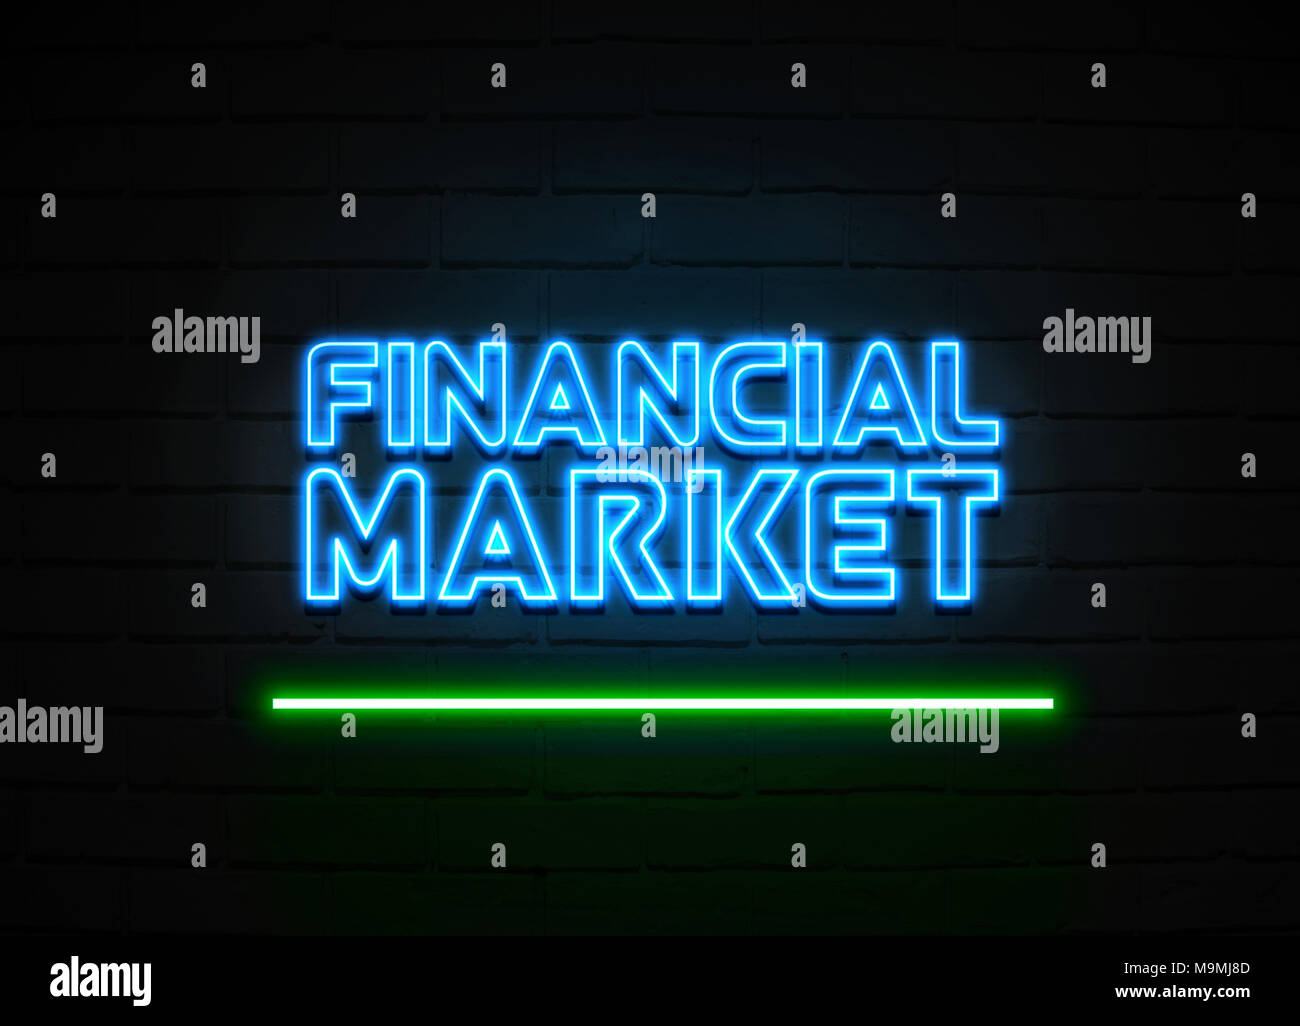 Financial Market neon sign - Glowing Neon Sign on brickwall wall - 3D rendered royalty free stock illustration. Stock Photo